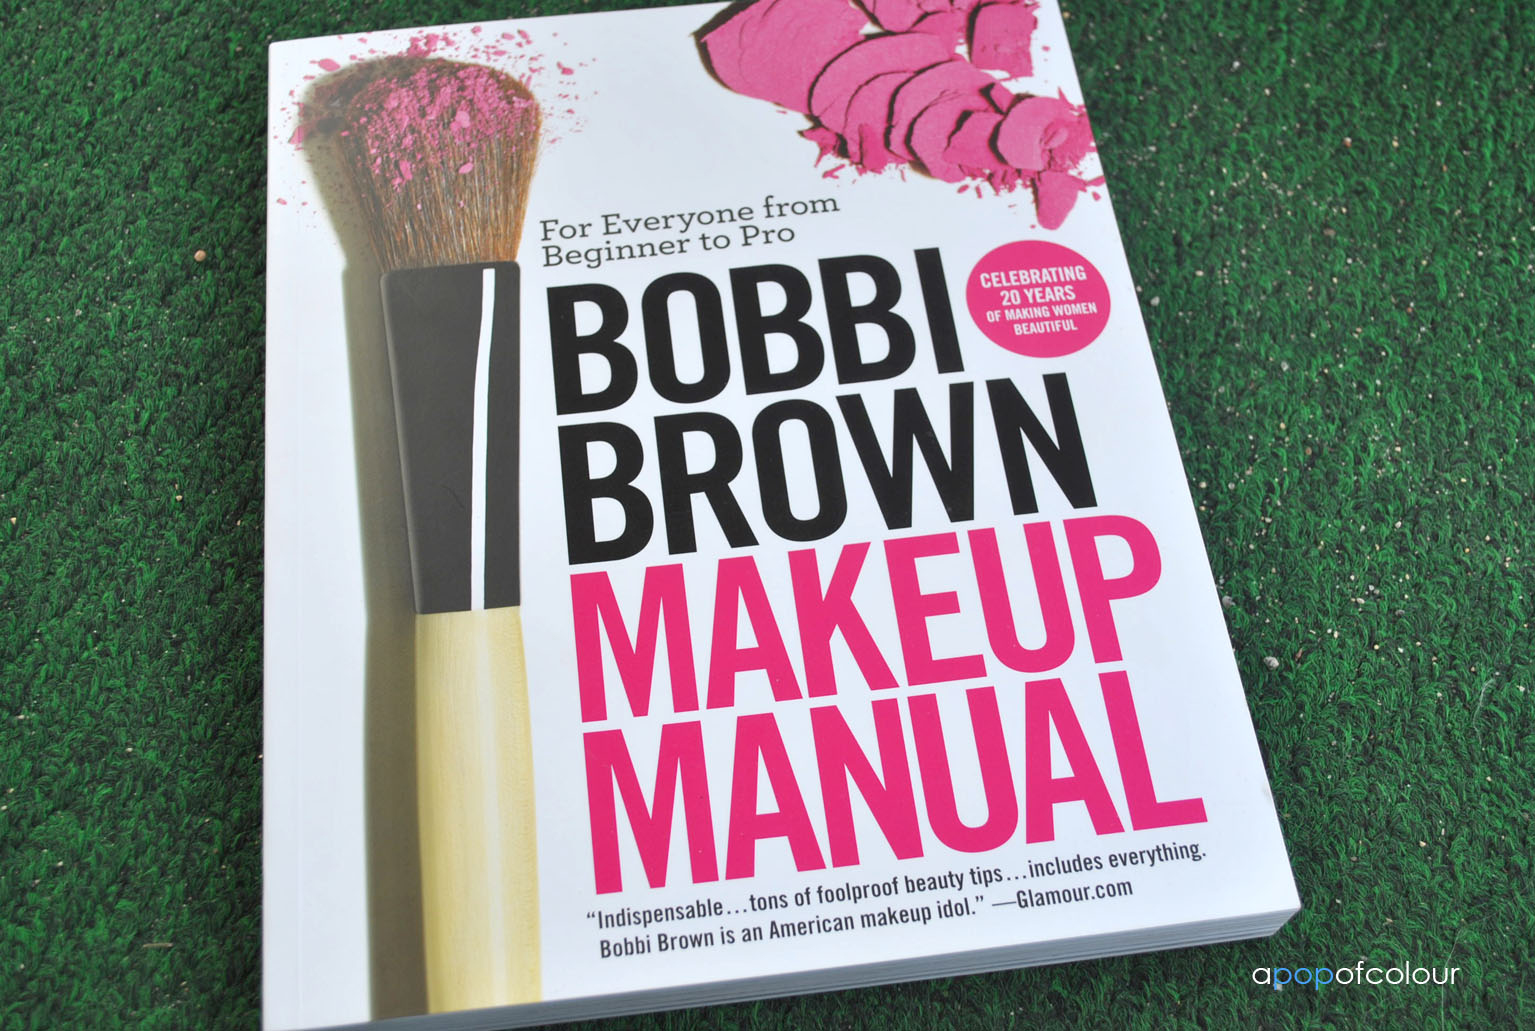 Book Review Bobbi Brown Makeup Manual A Pop Of Colour